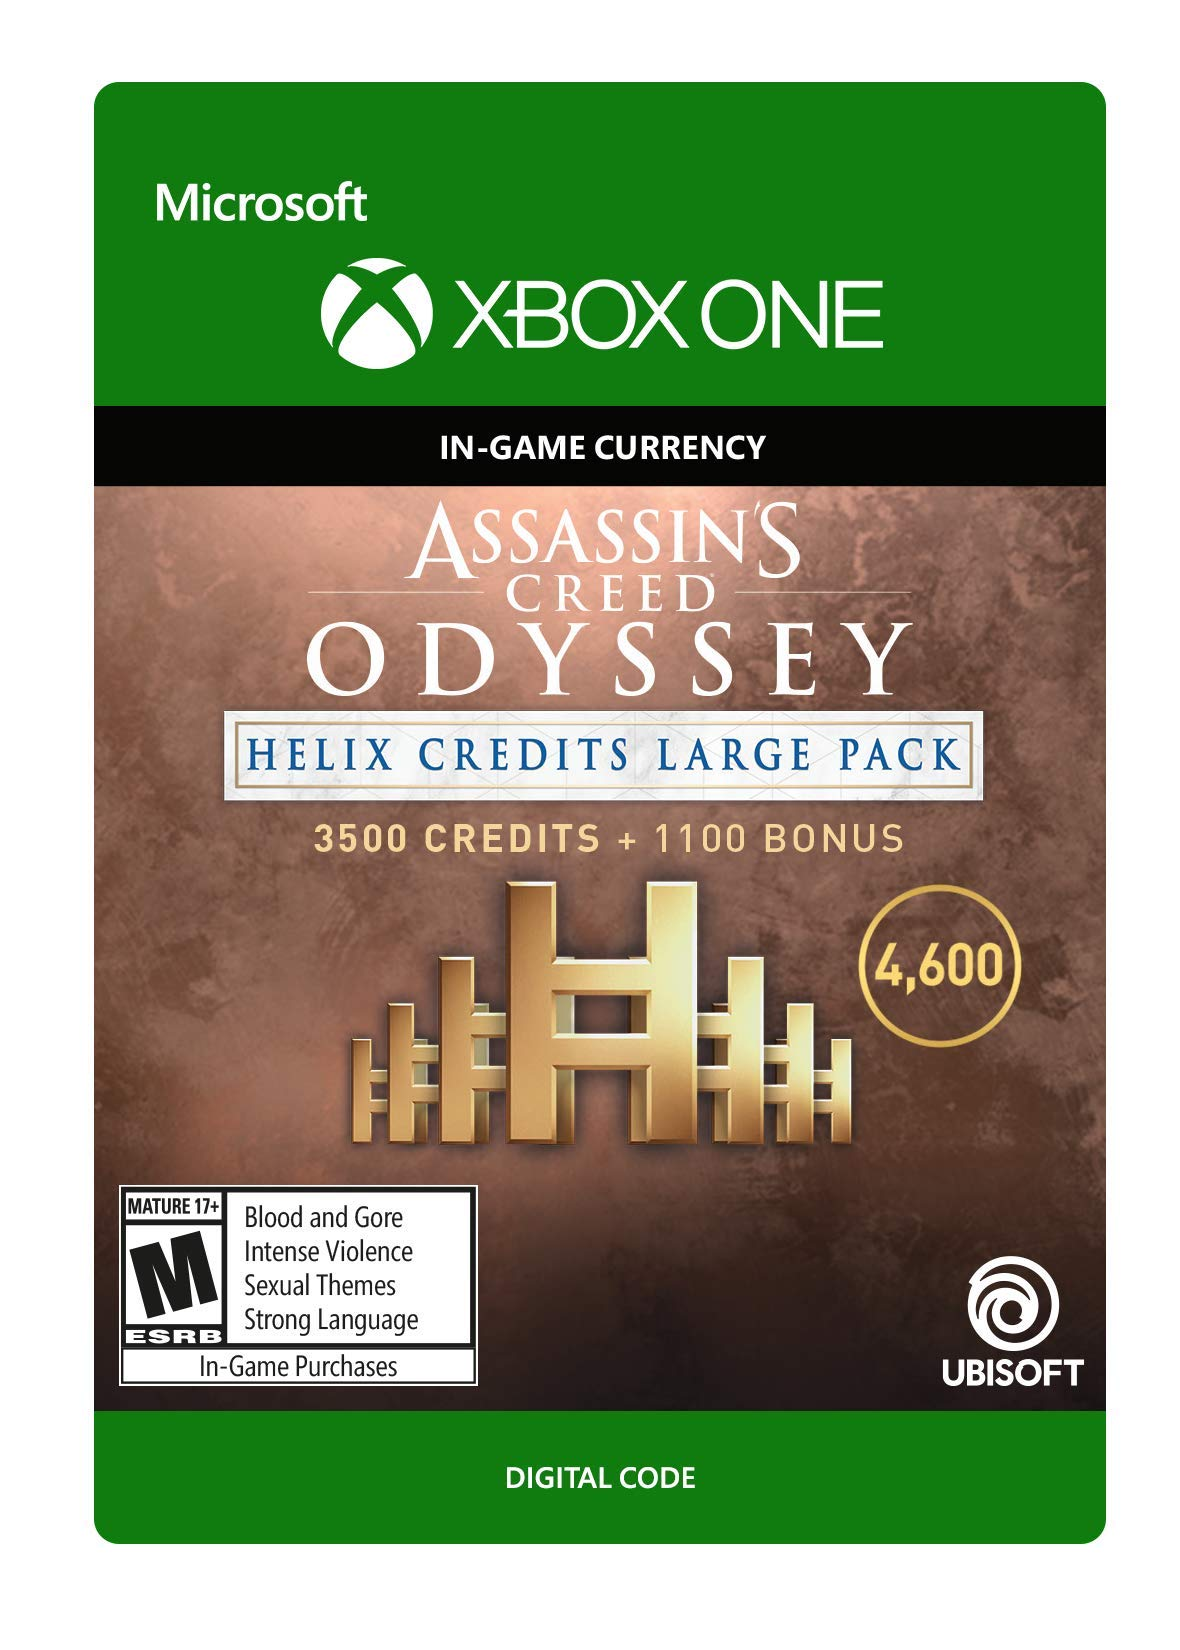 Assassin's Creed Odyssey: Helix Credits Large Pack Xbox One [Digital Code] by Ubisoft